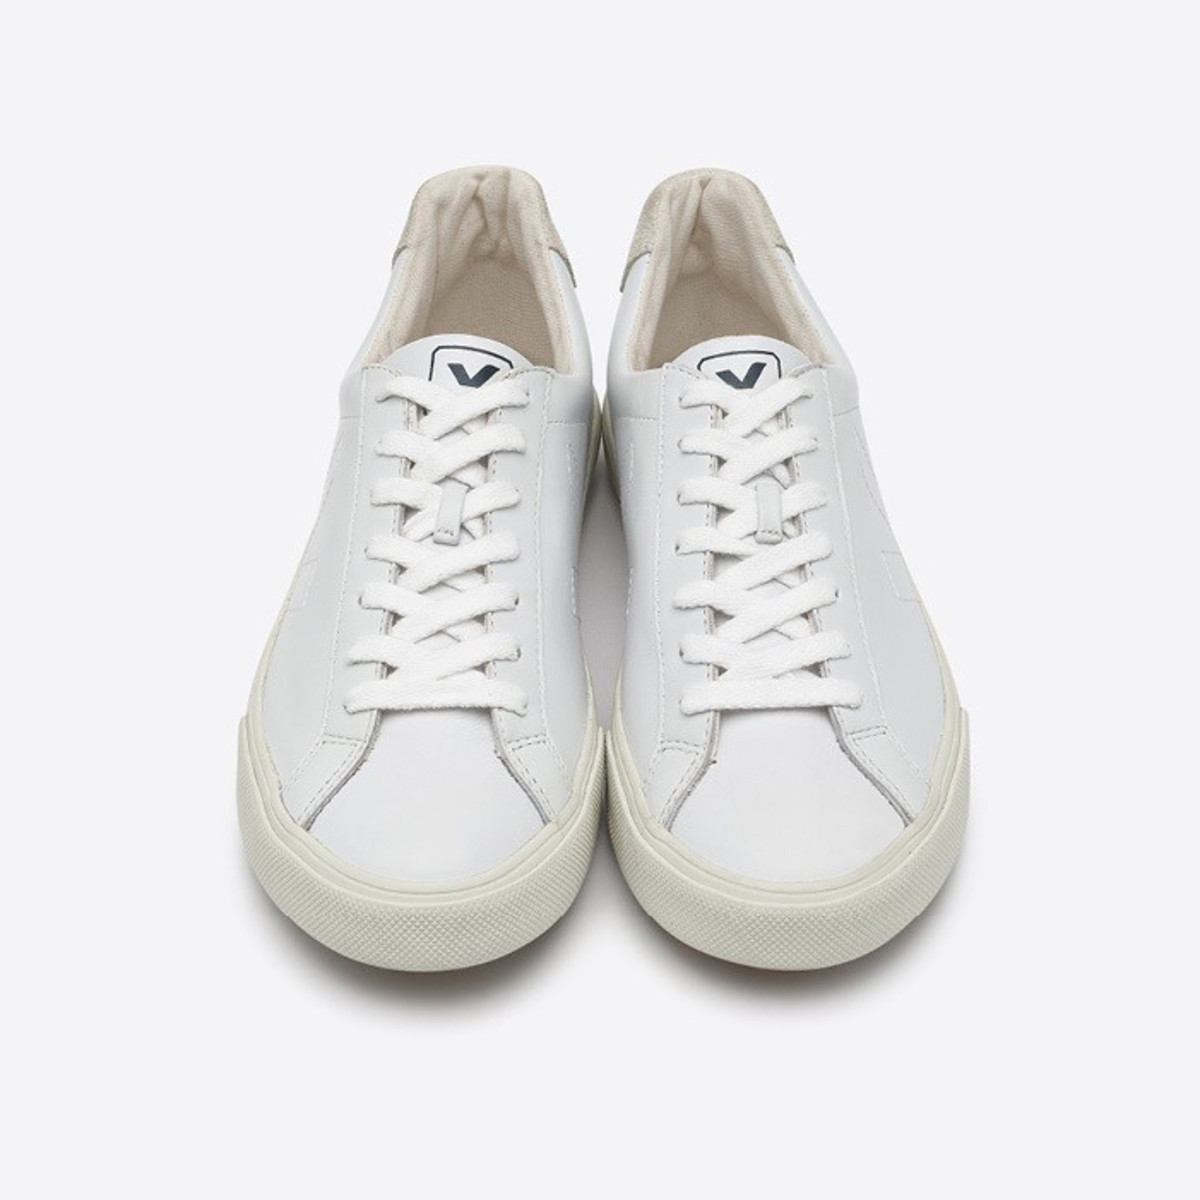 Veja Esplar leather extra white sneakers, $115, available at Veja and Zady.